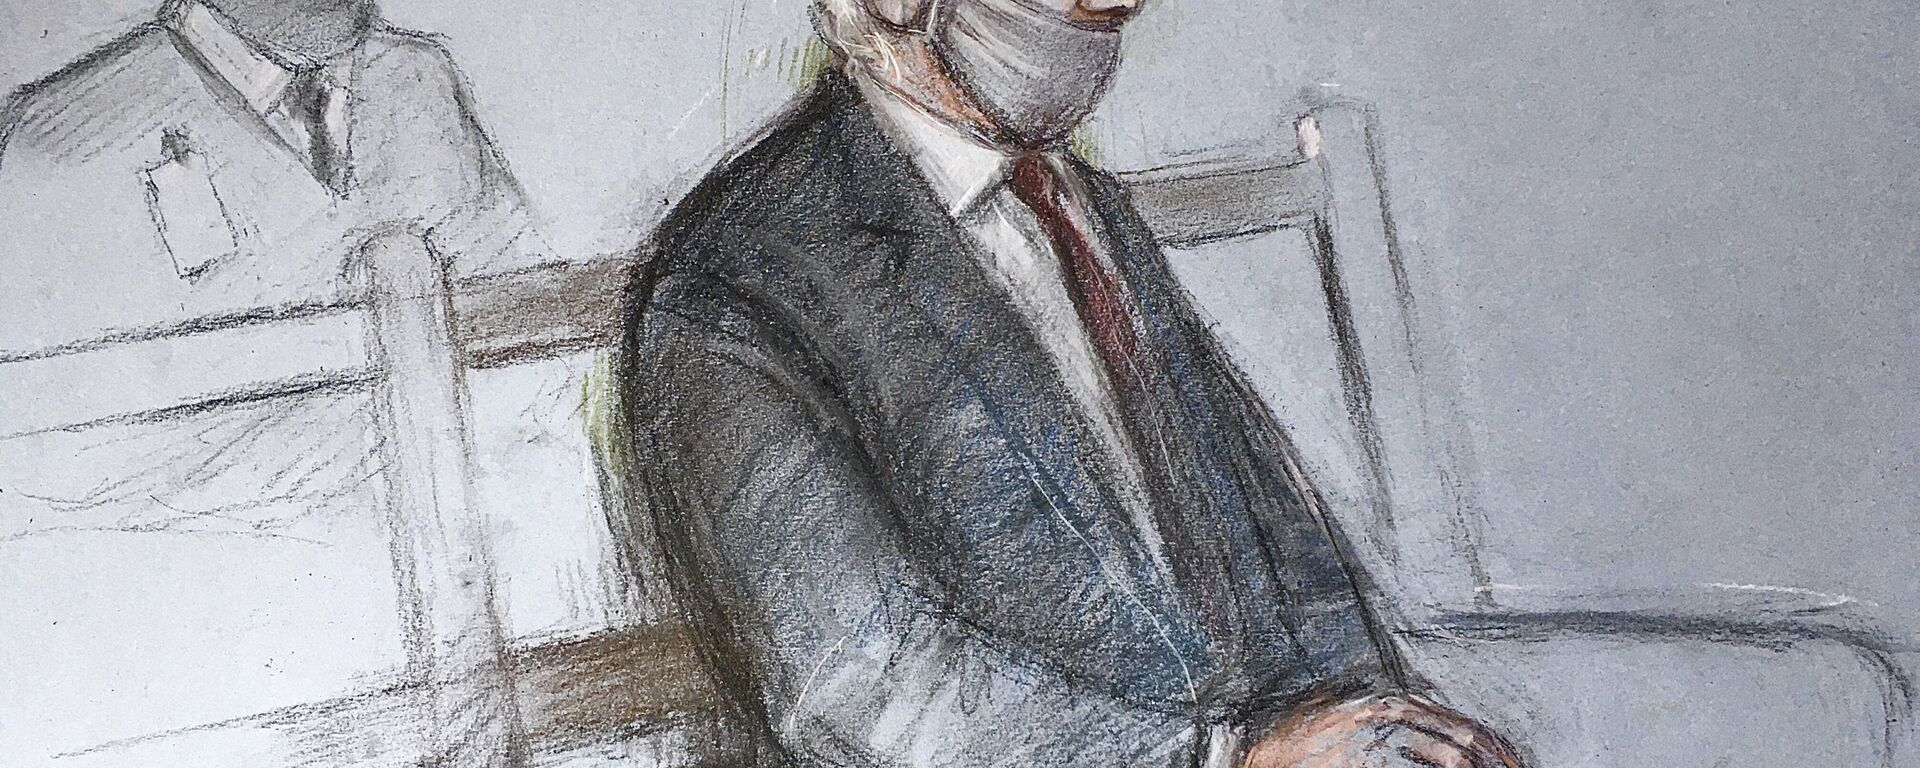 """This is a court artist sketch by Elizabeth Cook of Julian Assange appearing at the Old Bailey in London for the ruling in his extradition case, in London, Monday, Jan. 4, 2021. A British judge has rejected the United States' request to extradite WikiLeaks founder Julian Assange to face espionage charges, saying it would be """"oppressive"""" because of his mental health. District Judge Vanessa Baraitser said Assange was likely to kill himself if sent to the U.S. The U.S. government said it would appeal the decision.  (Elizabeth Cook/PA via AP) - Sputnik International, 1920, 02.07.2021"""